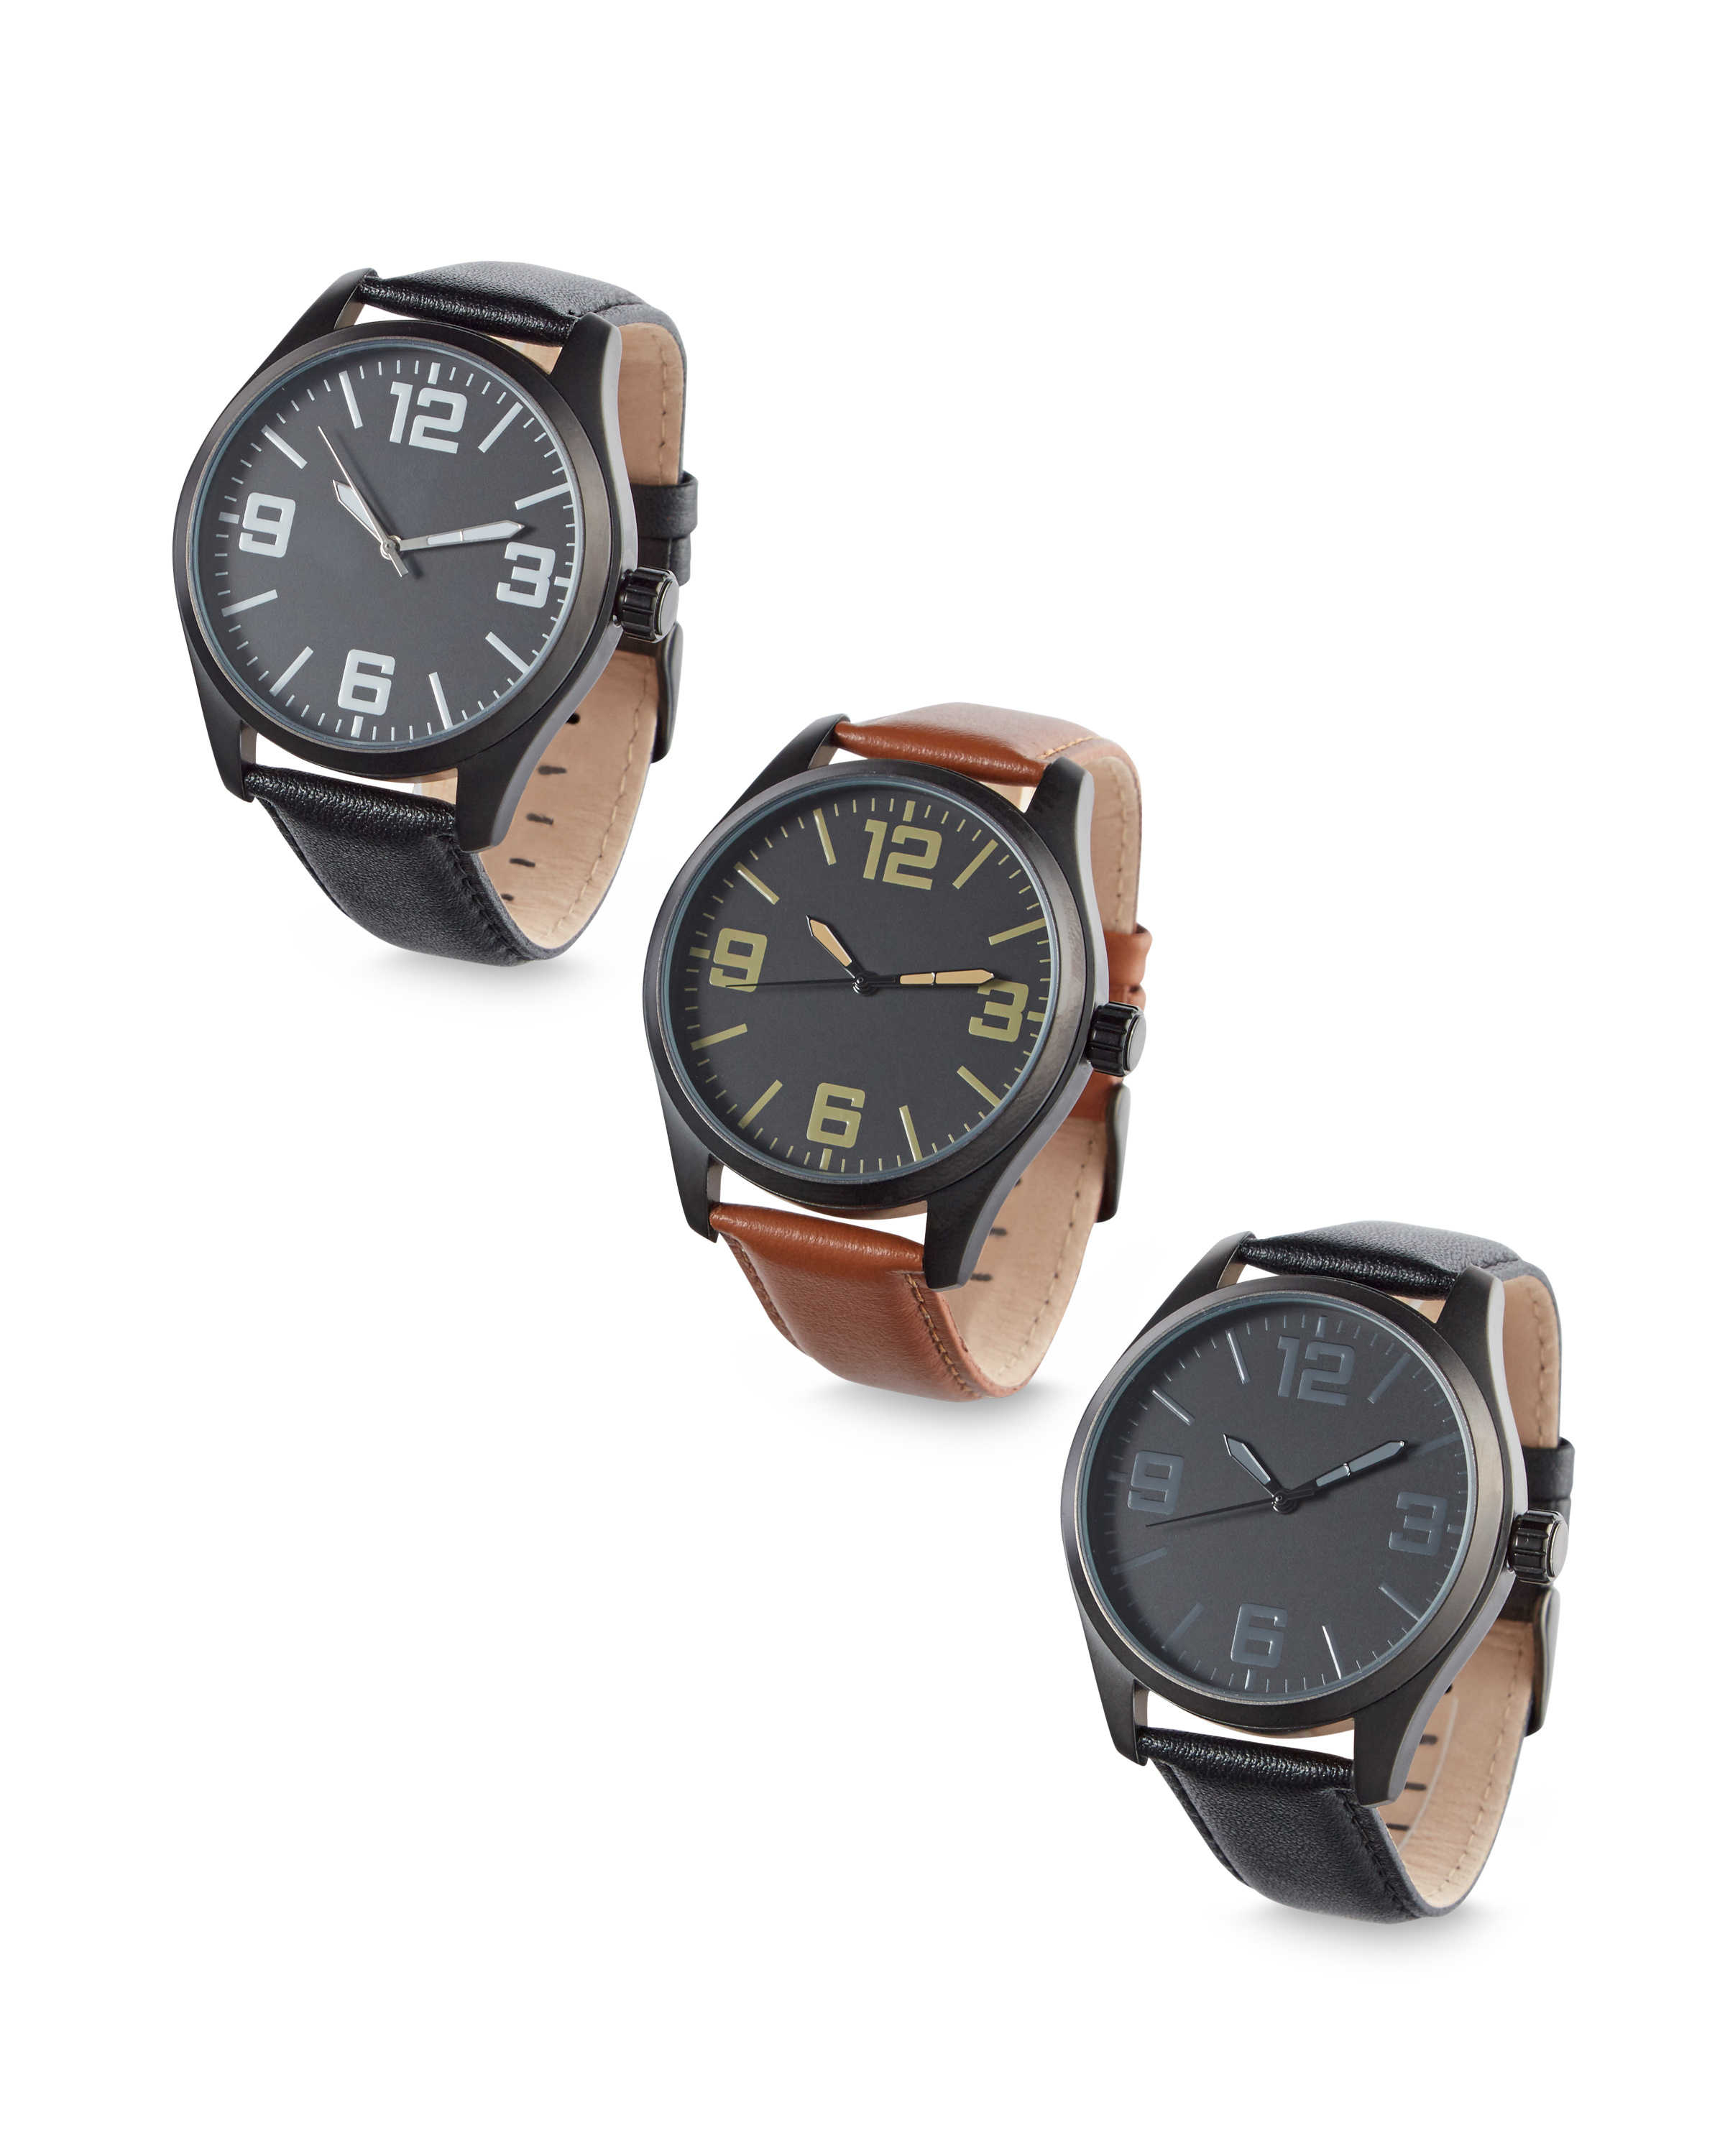 Aldi Automatic Aviation Watches - Watch Discussion Forum